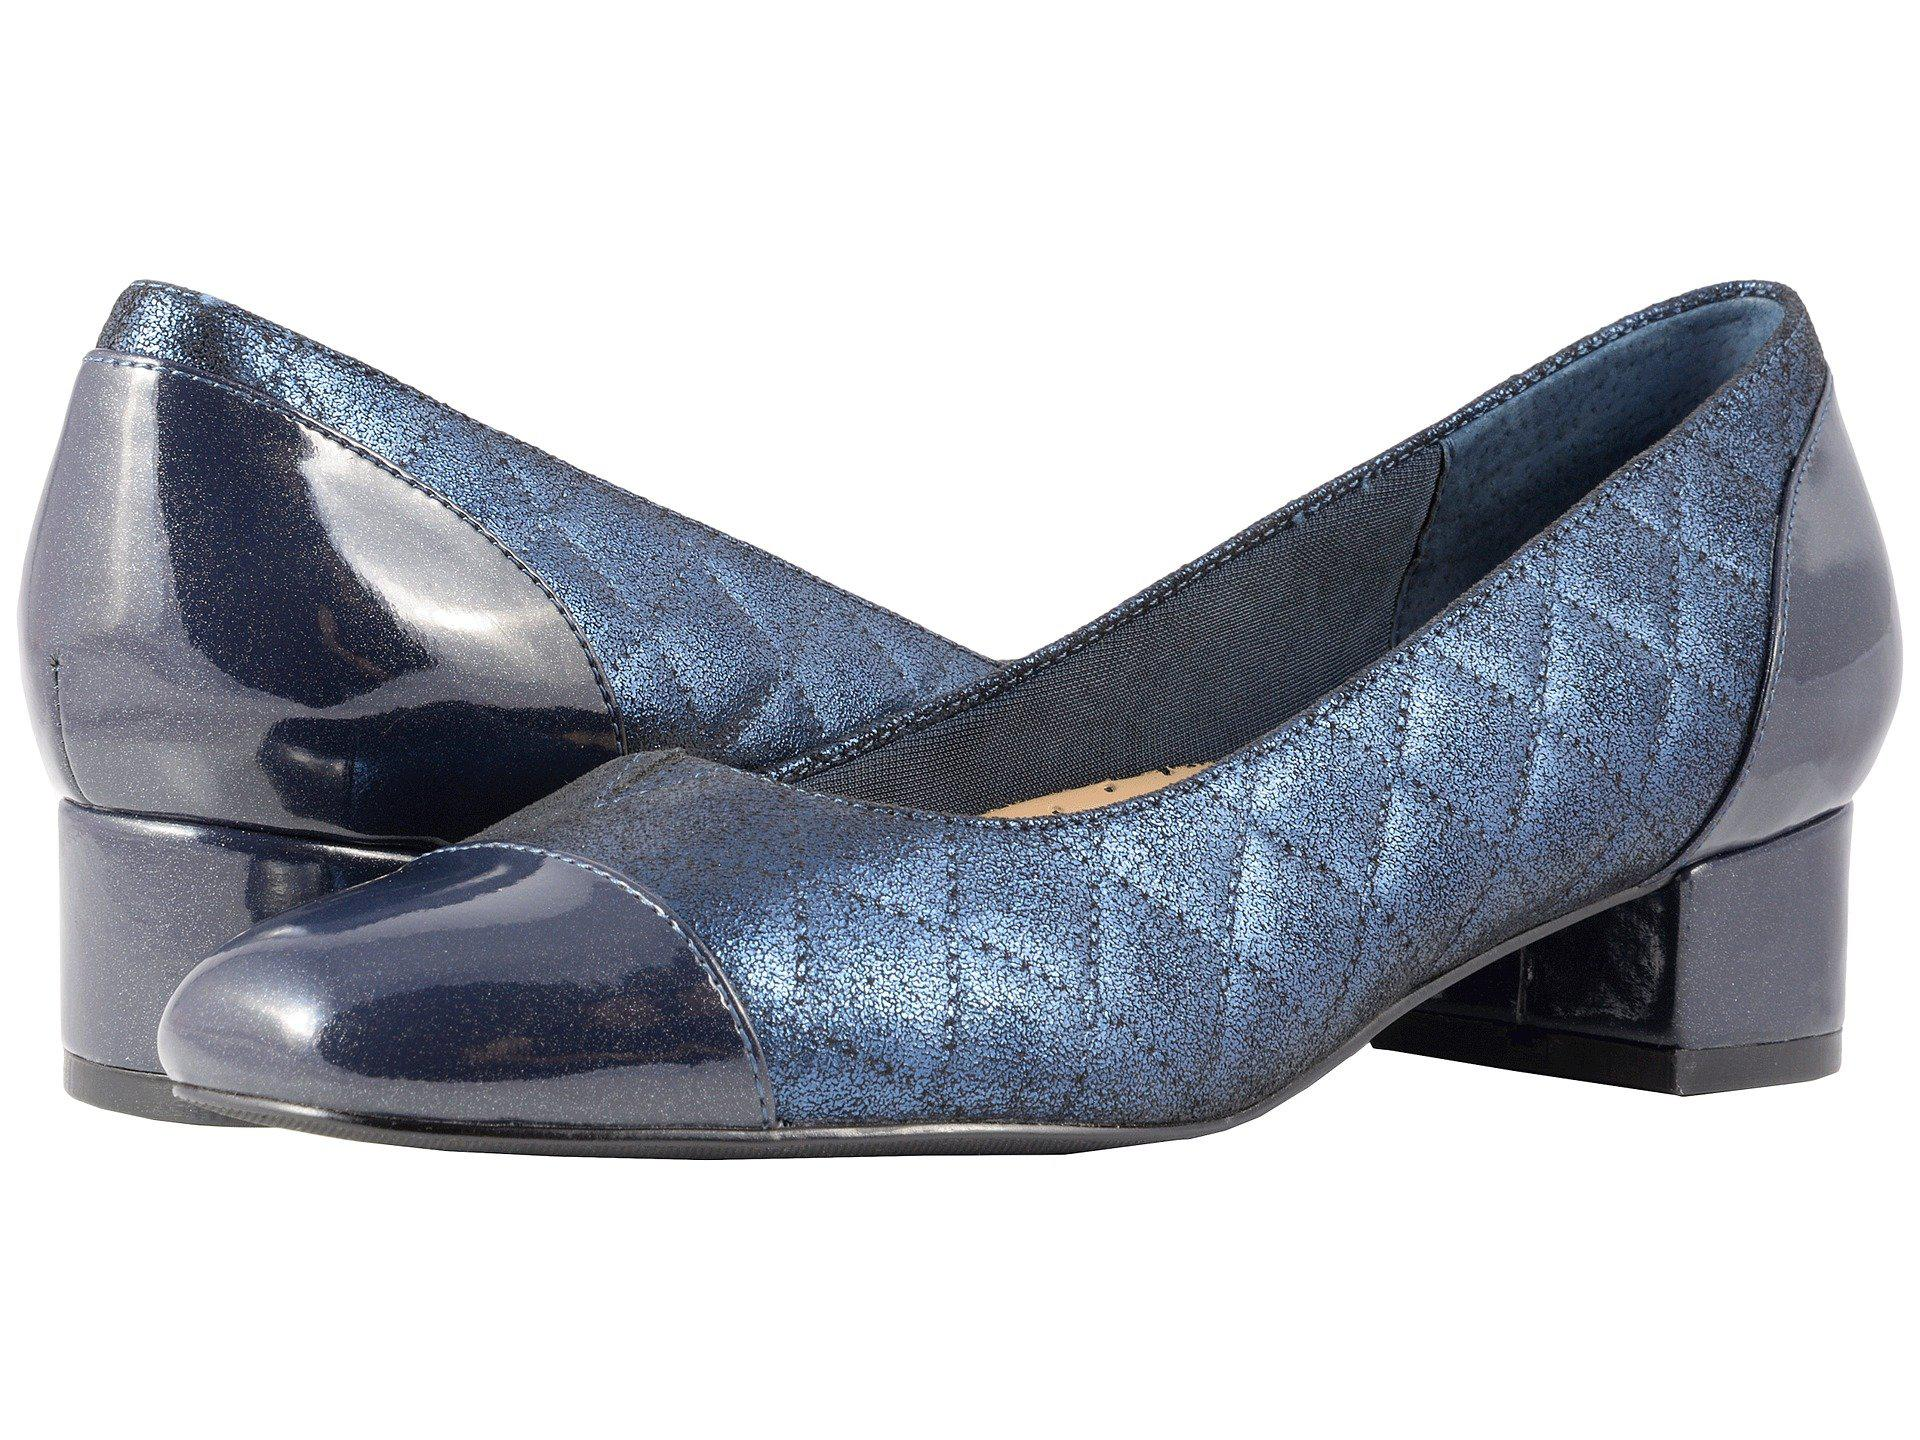 Trotters Danelle Quilted Leather Block Heel Pumps sAryXwE9dp